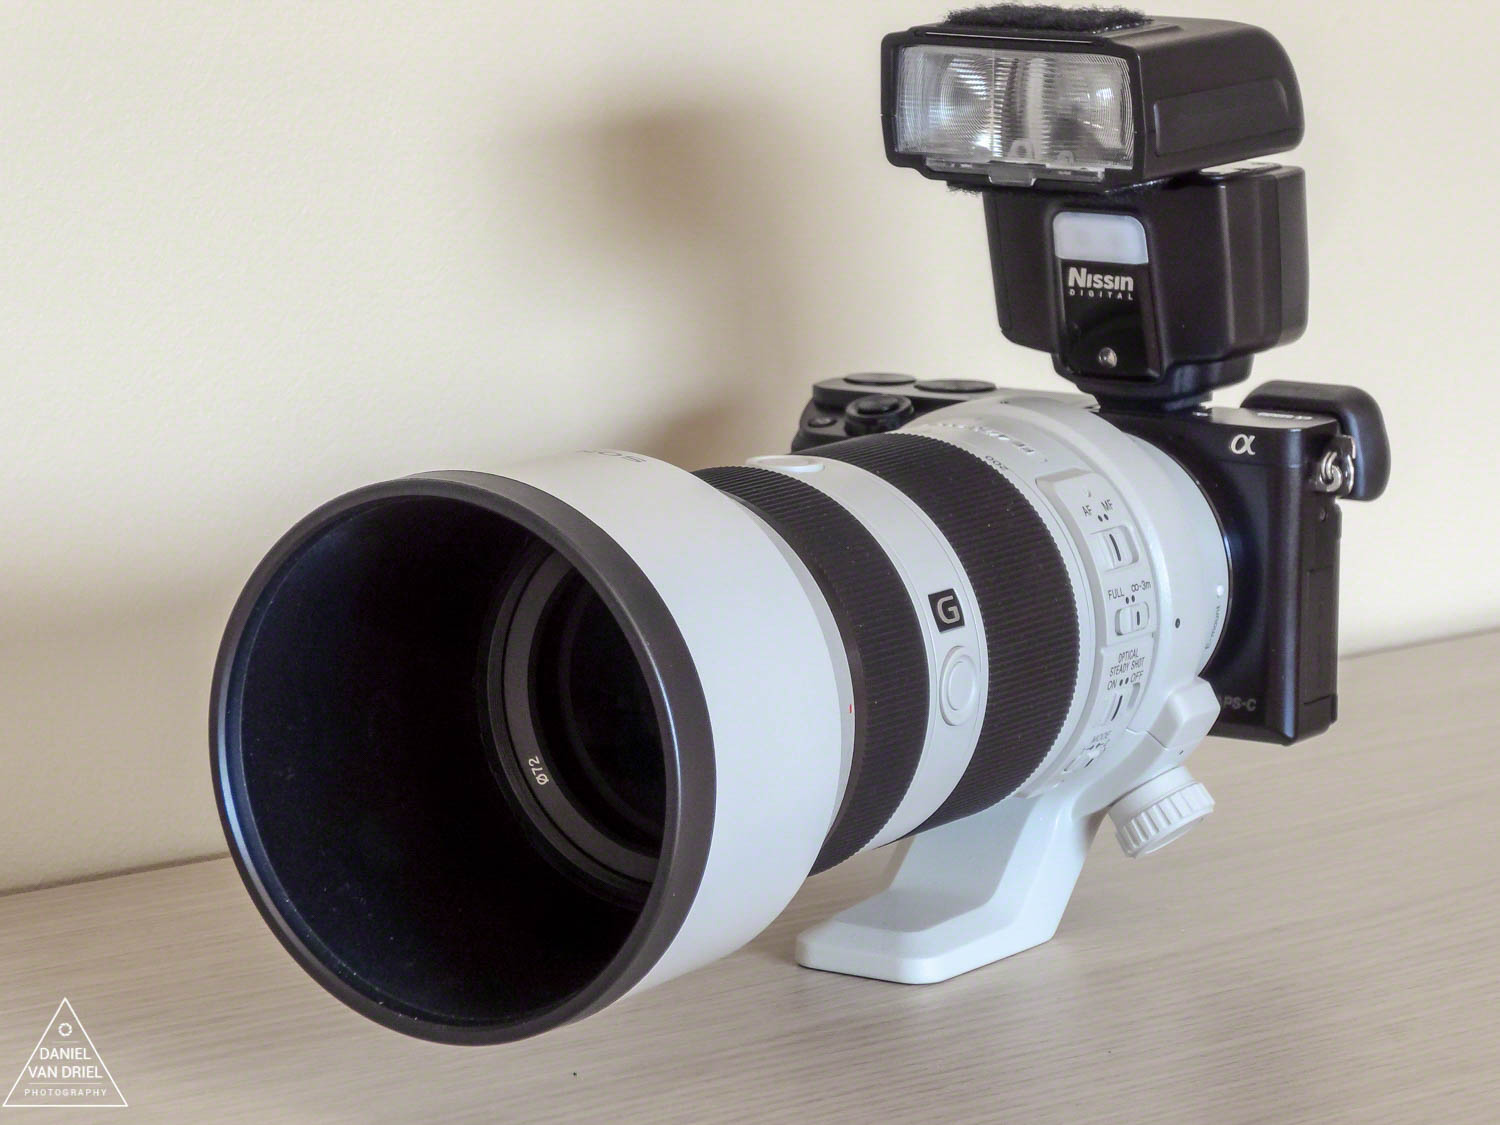 Sony a6000 with Sony FE 70-200 F4 G OSS Lens and Nissin i40 Flash